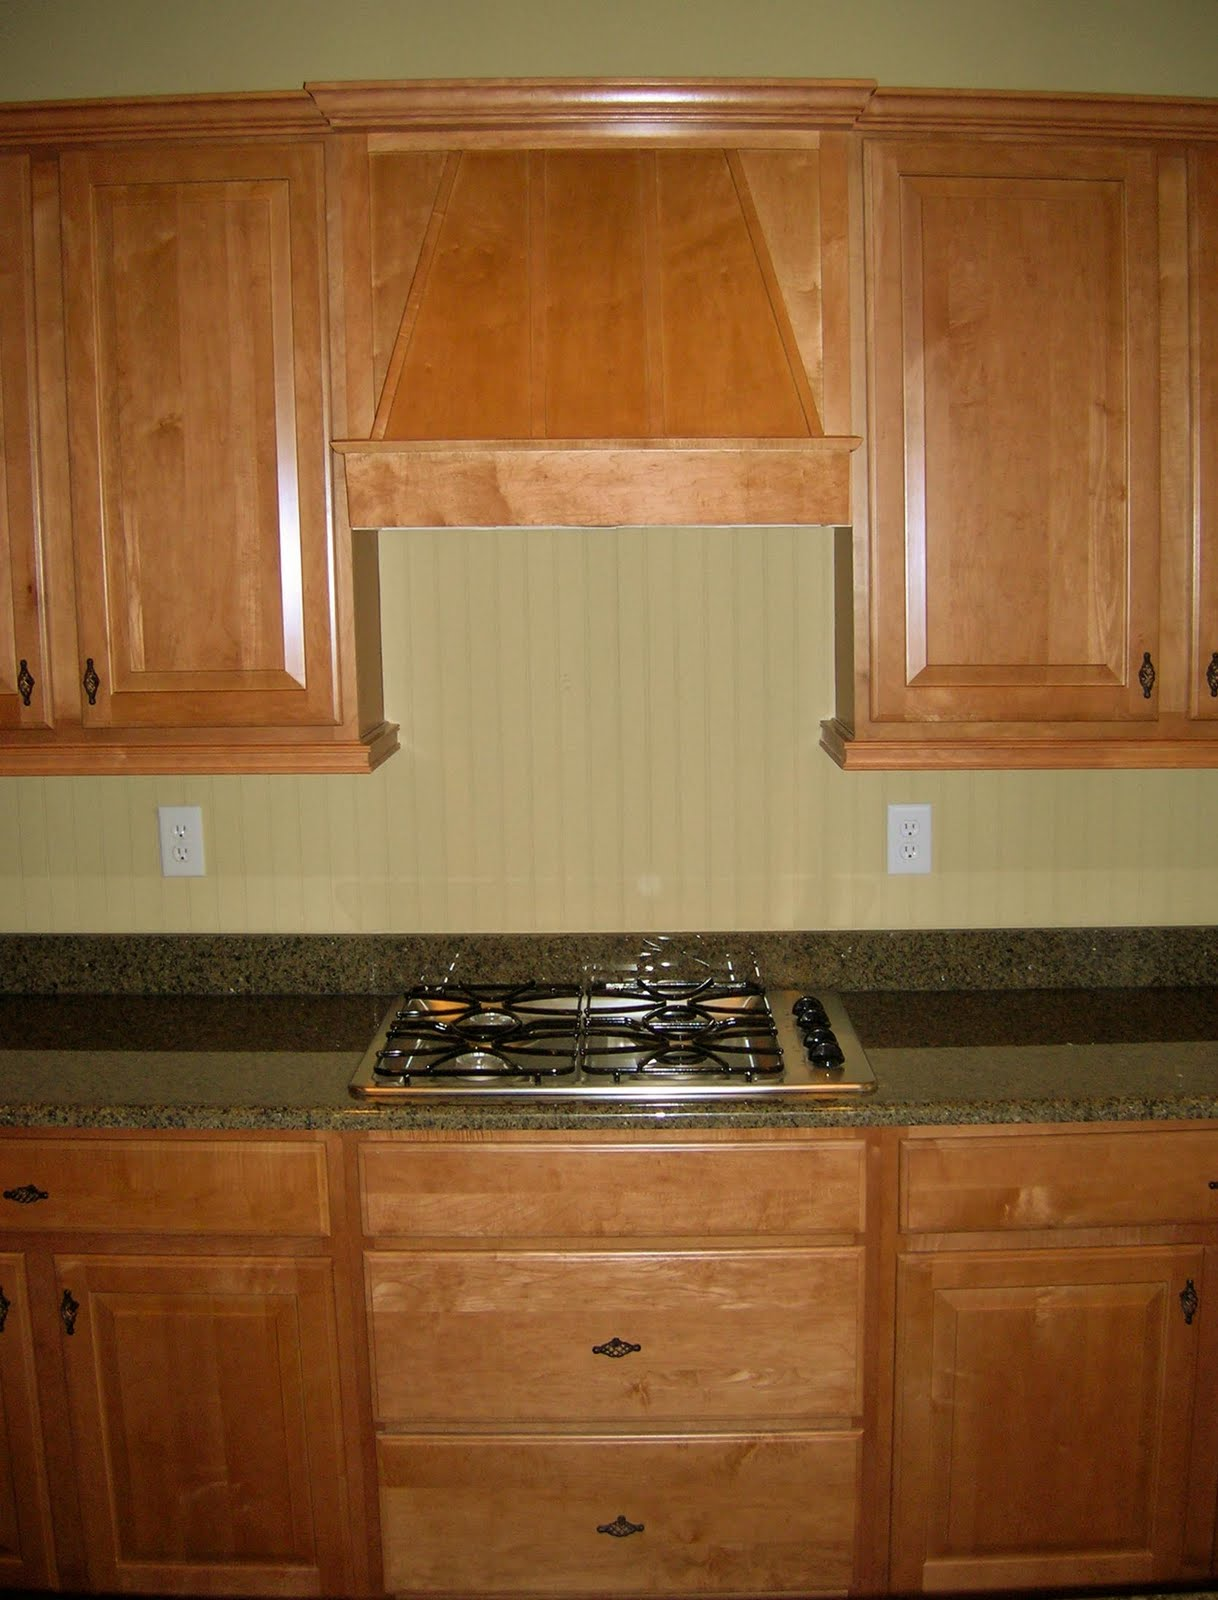 j thomas price designs beadboard backsplash